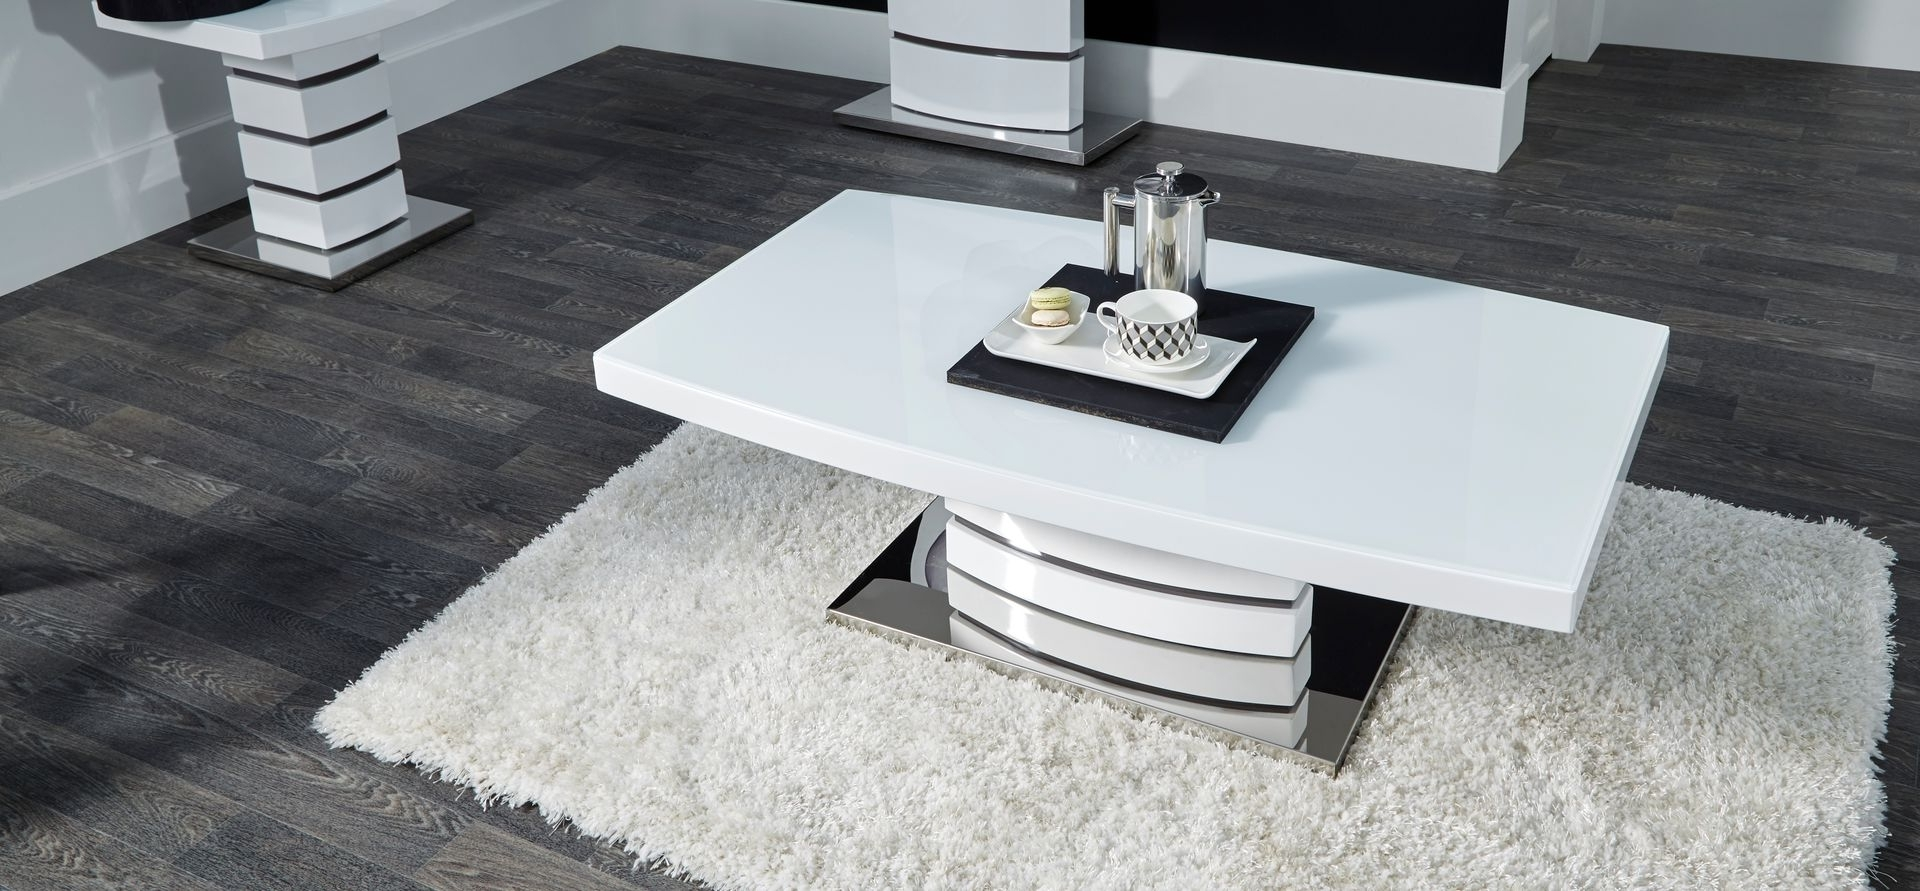 New Soho White Coffee Table - Scs intended for Most Recently Released Scs Dining Room Furniture